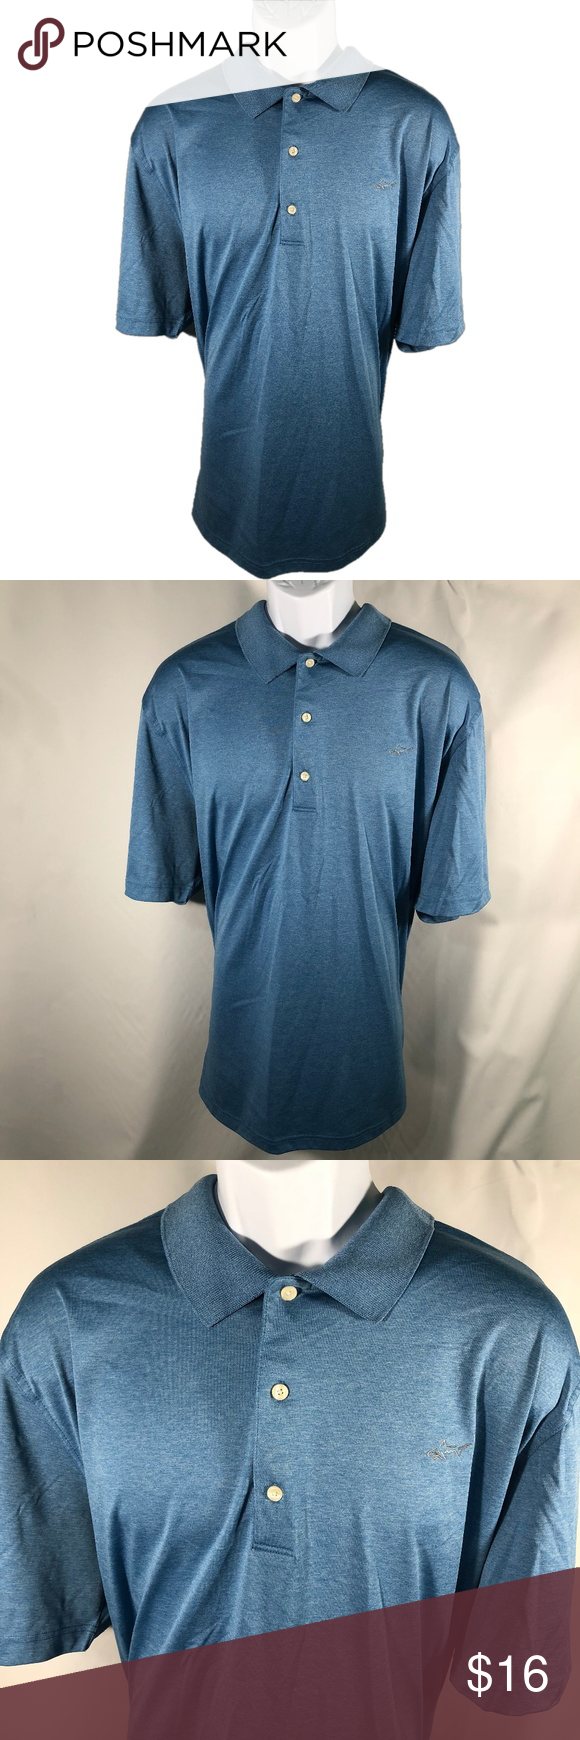 """Greg Norman ML75 Polo Details:  Brand: Greg Norman  Tag Size: XXL  Inventory Number: BC05  Measurements:  Chest: 52"""" Sleeve: 12"""" Body: 31""""  ·         Please see photos of commonly requested measurements. Do not hesitate to message requesting additional measurements or clarification.  Materials:  ·         Please see photo of complete materials tag with in listing.  Condition:  ·         Item is pre-owned. Previously gently worn. Free from stains, snags or holes. Greg Norman Shirts Polos"""